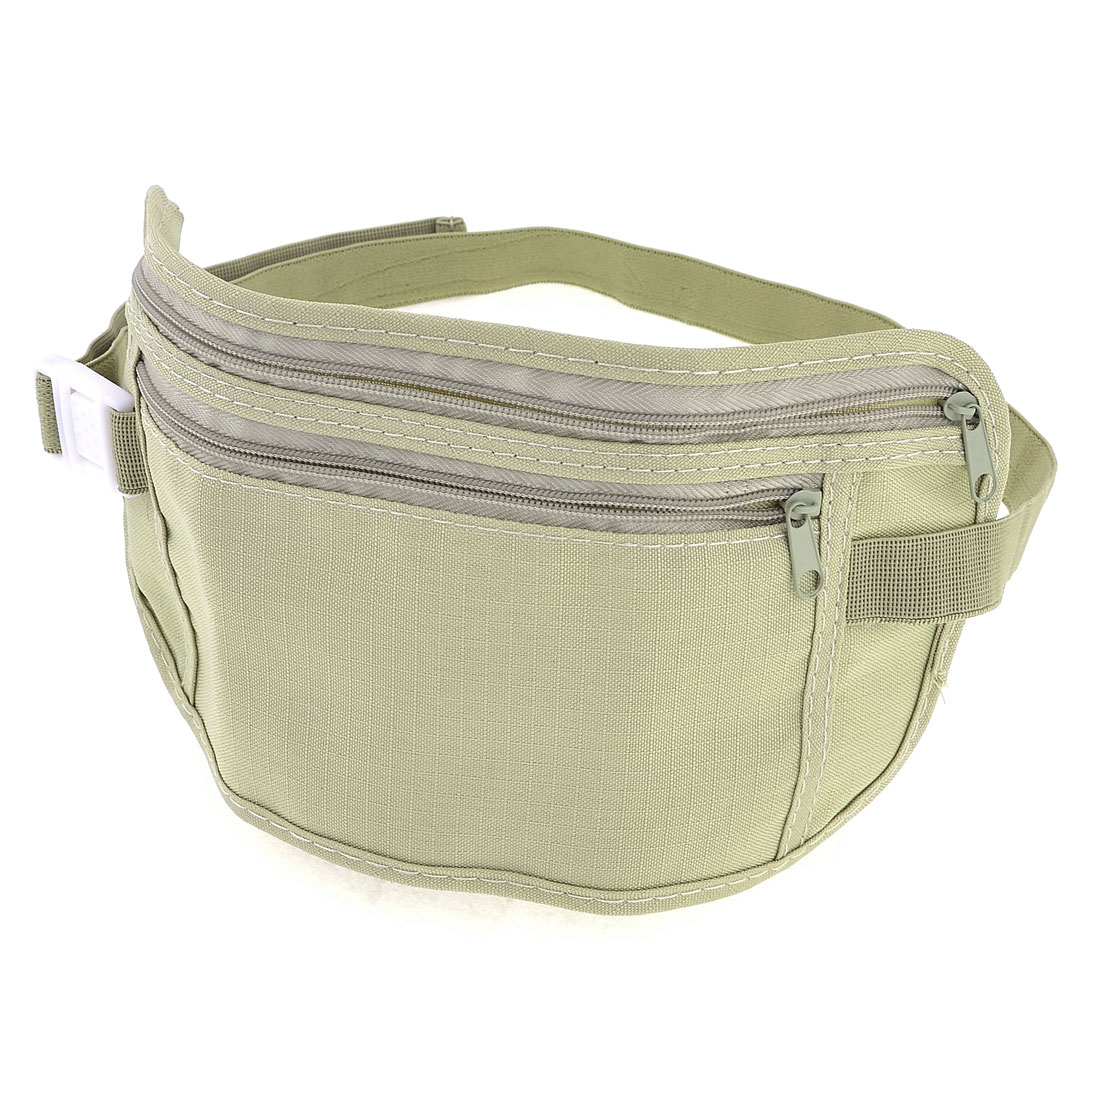 Lady Men Khaki Zip up 2 Compartments Adjustable Strap Waist Bag Pack Purse